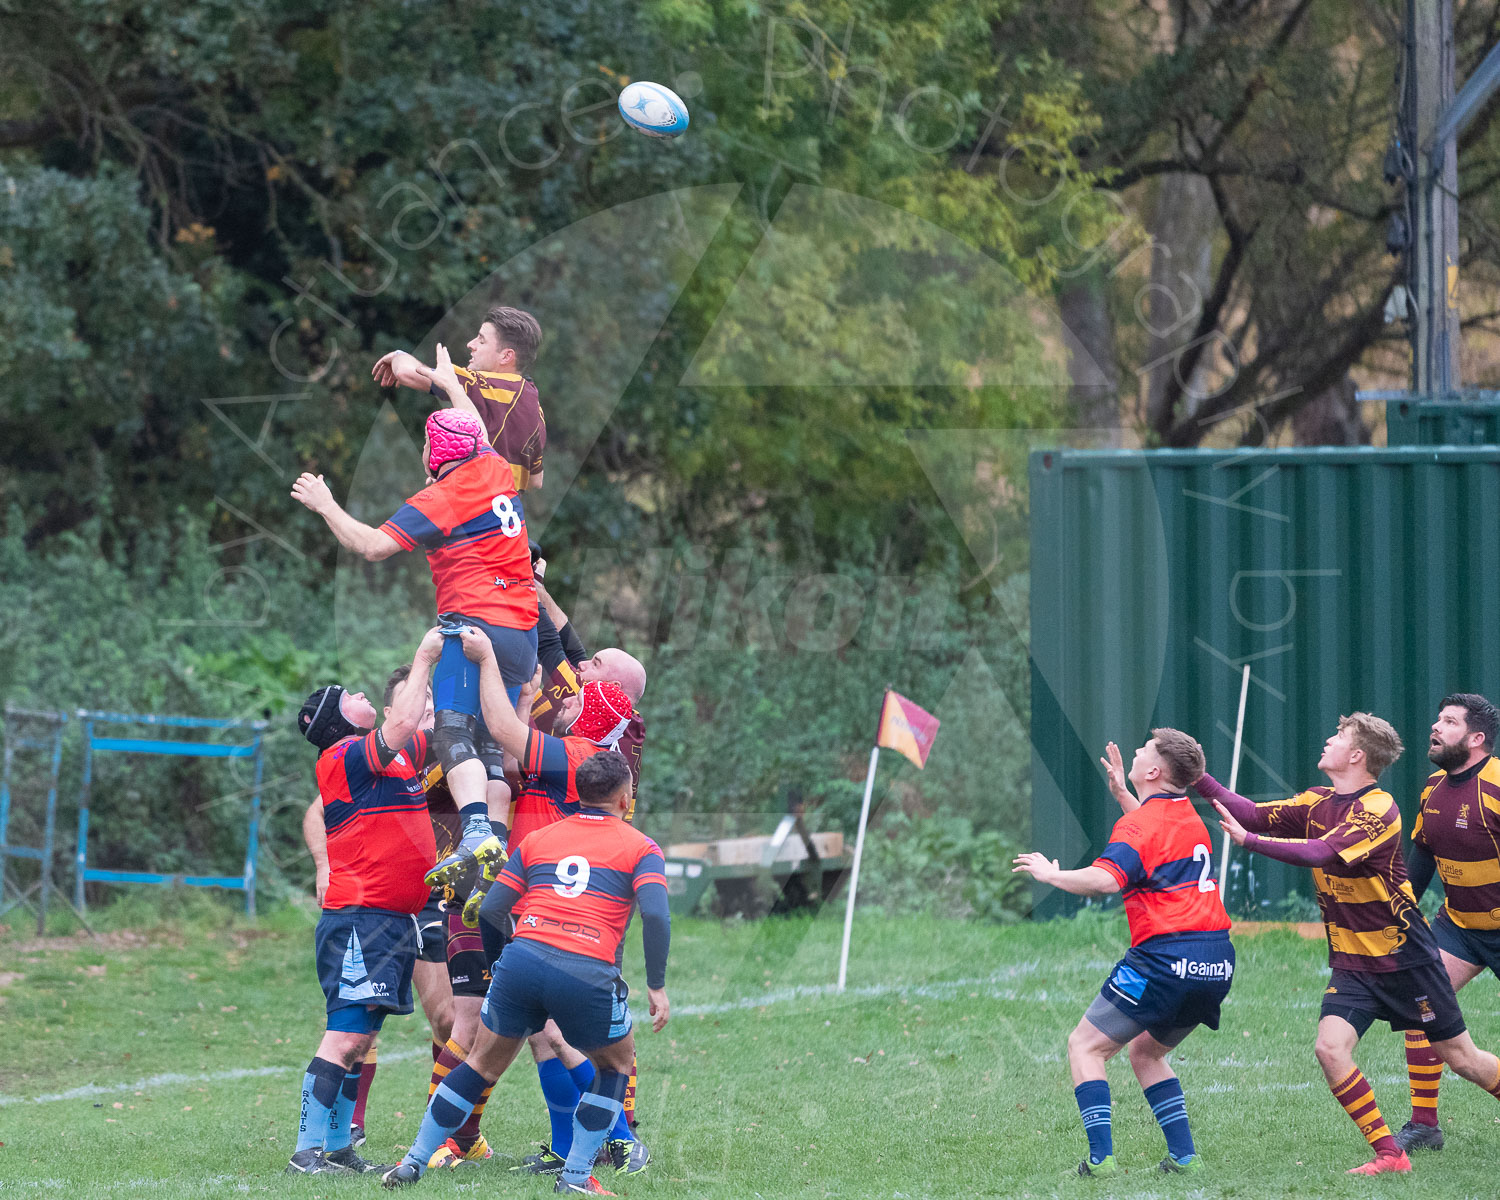 20181027 Amp Extras vs St Neots 2nd XV #2273